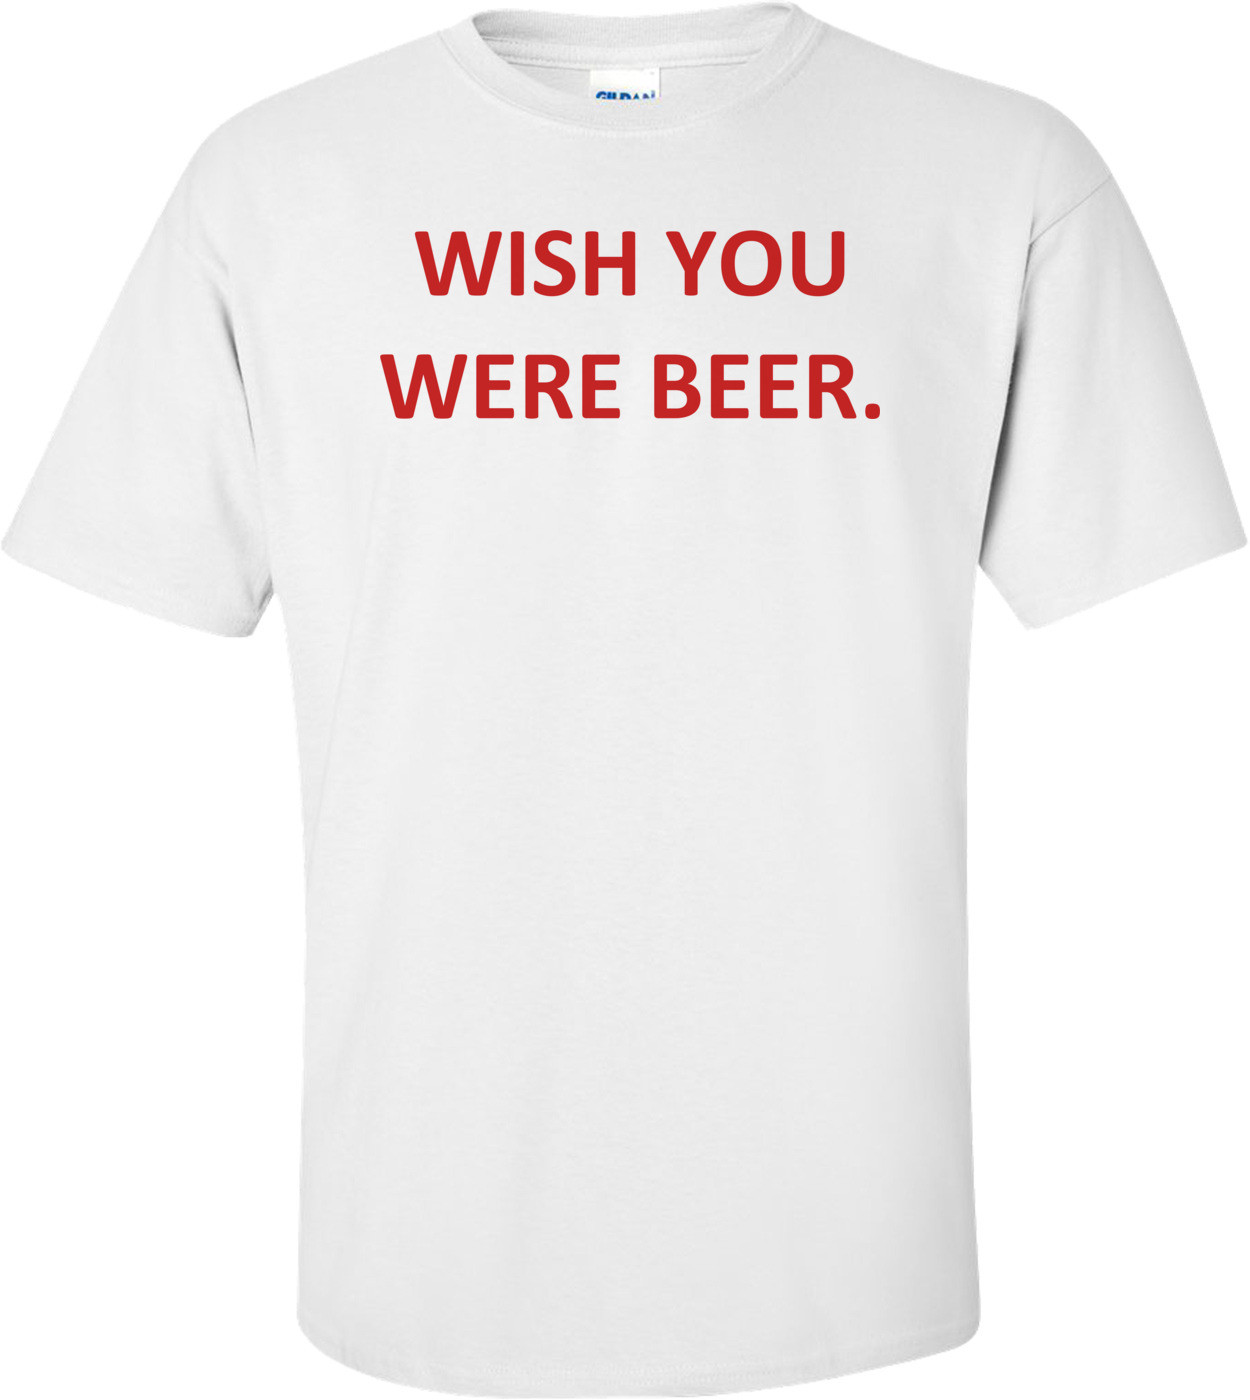 WISH YOU WERE BEER. Shirt